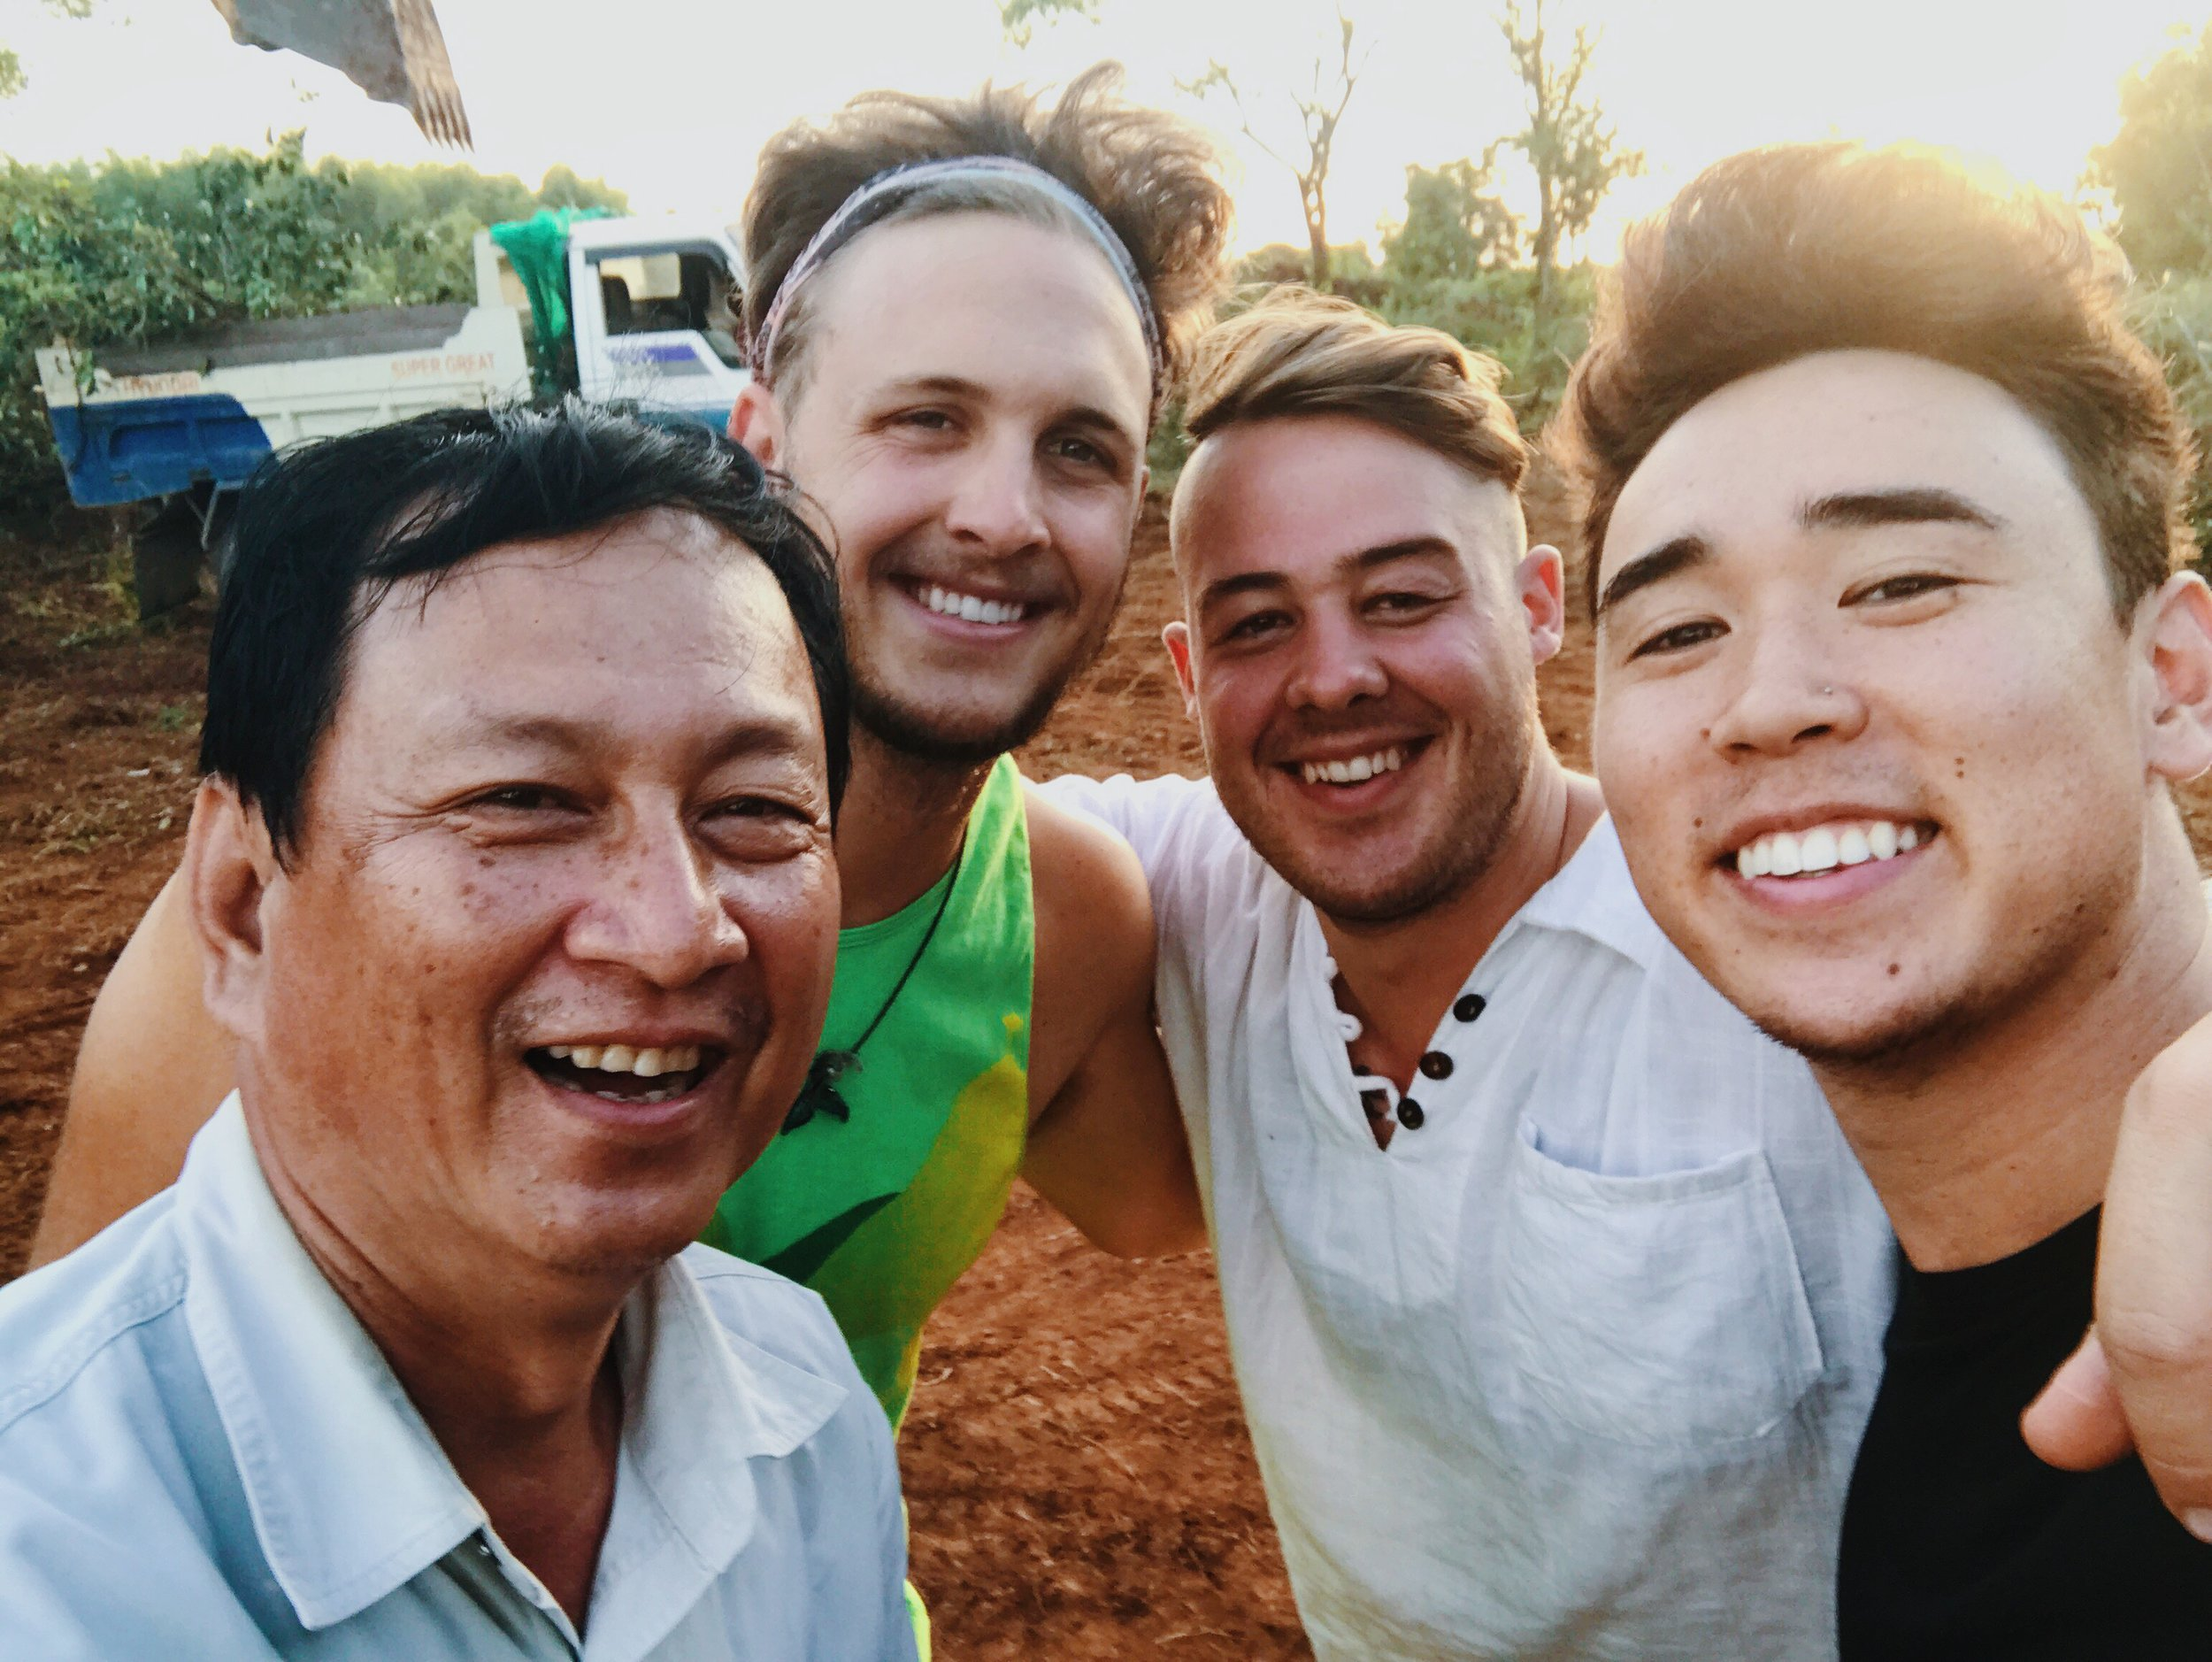 Pastor Hong wanted a selfie to commemorate Day 2 of geo-terracing and grading